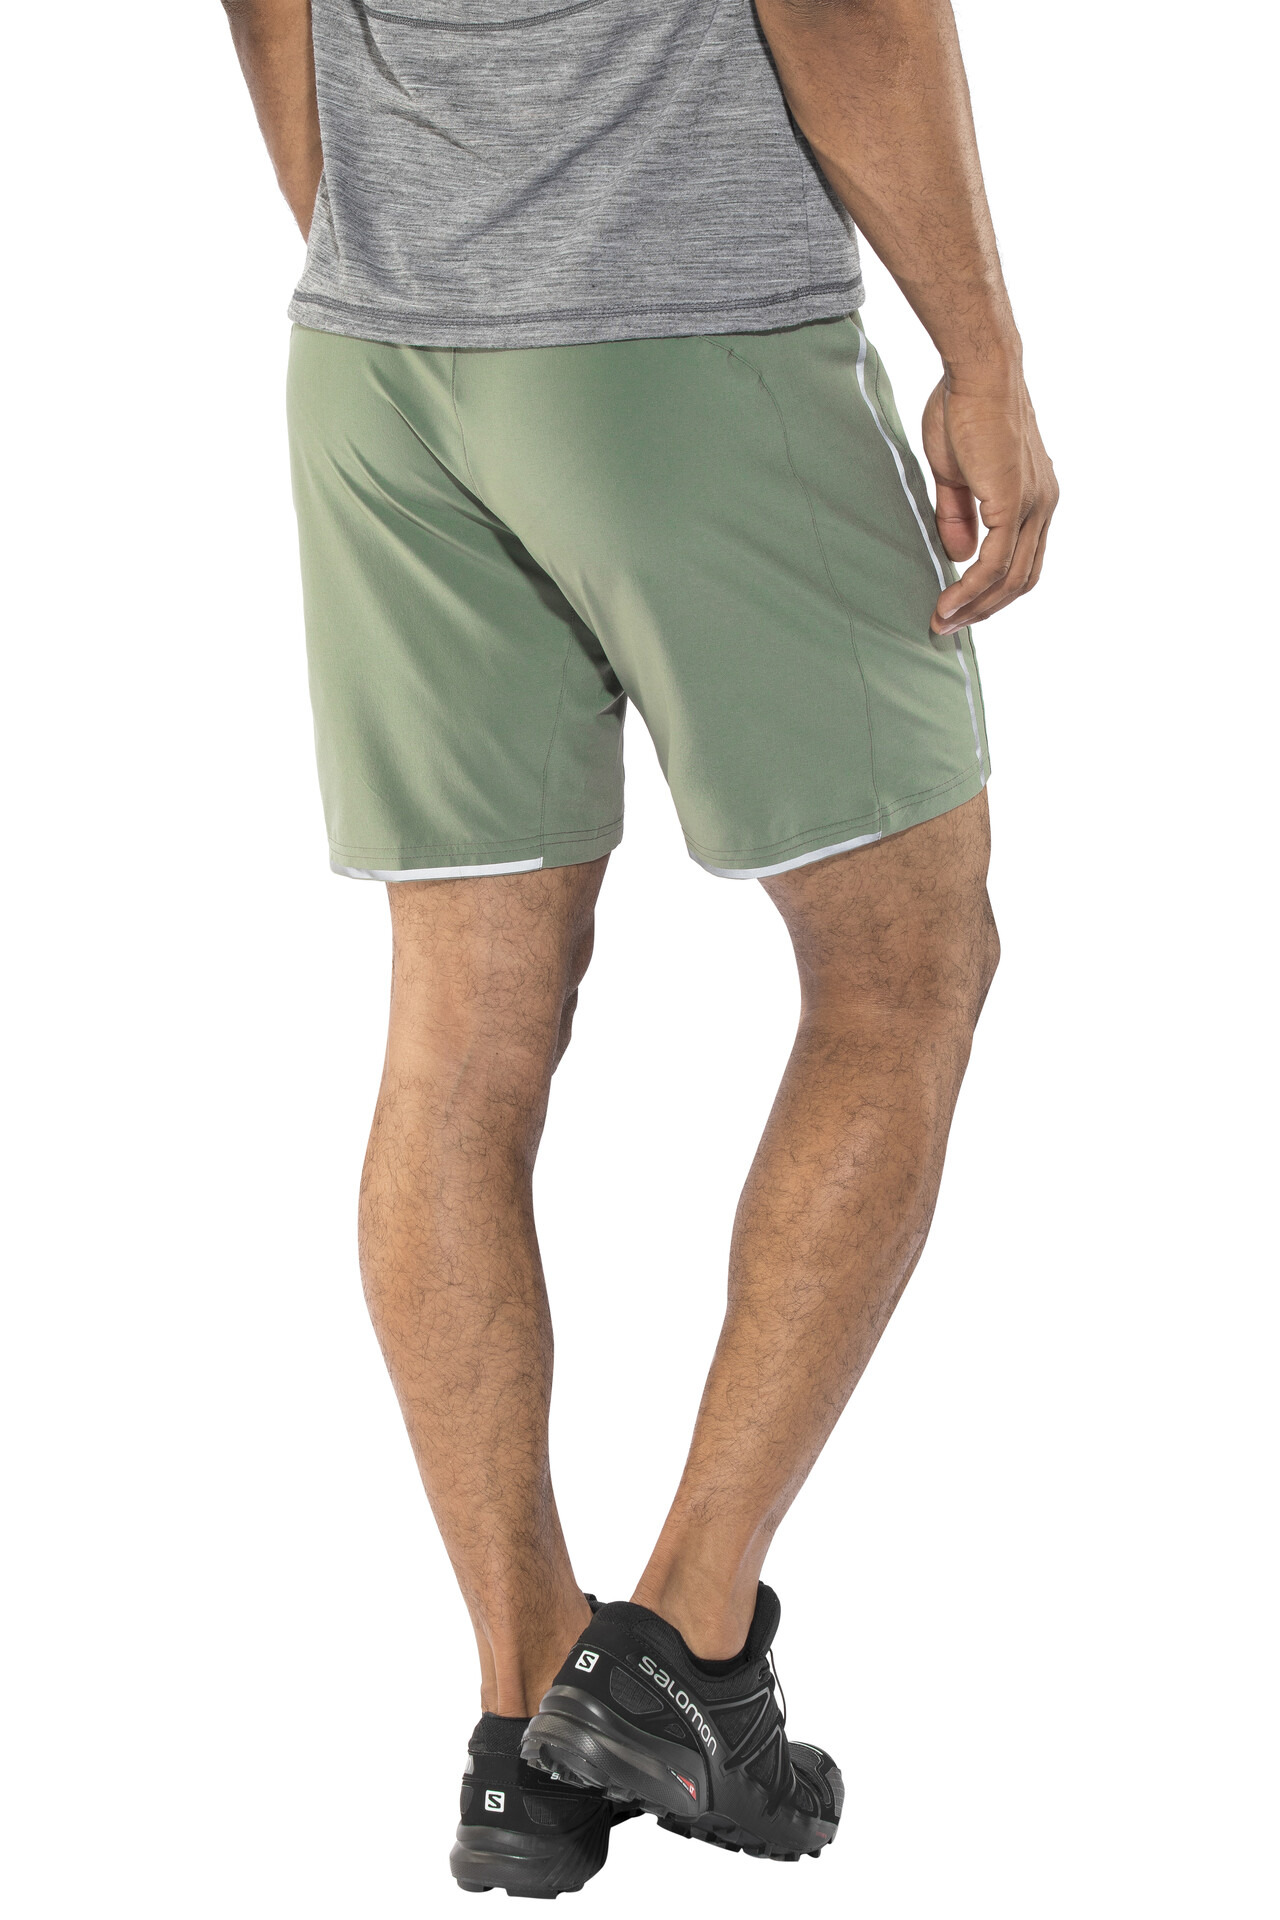 Running Clothing Shorts Wear R5 Outdoor Sportsamp; Gore Mens zqSUMVp